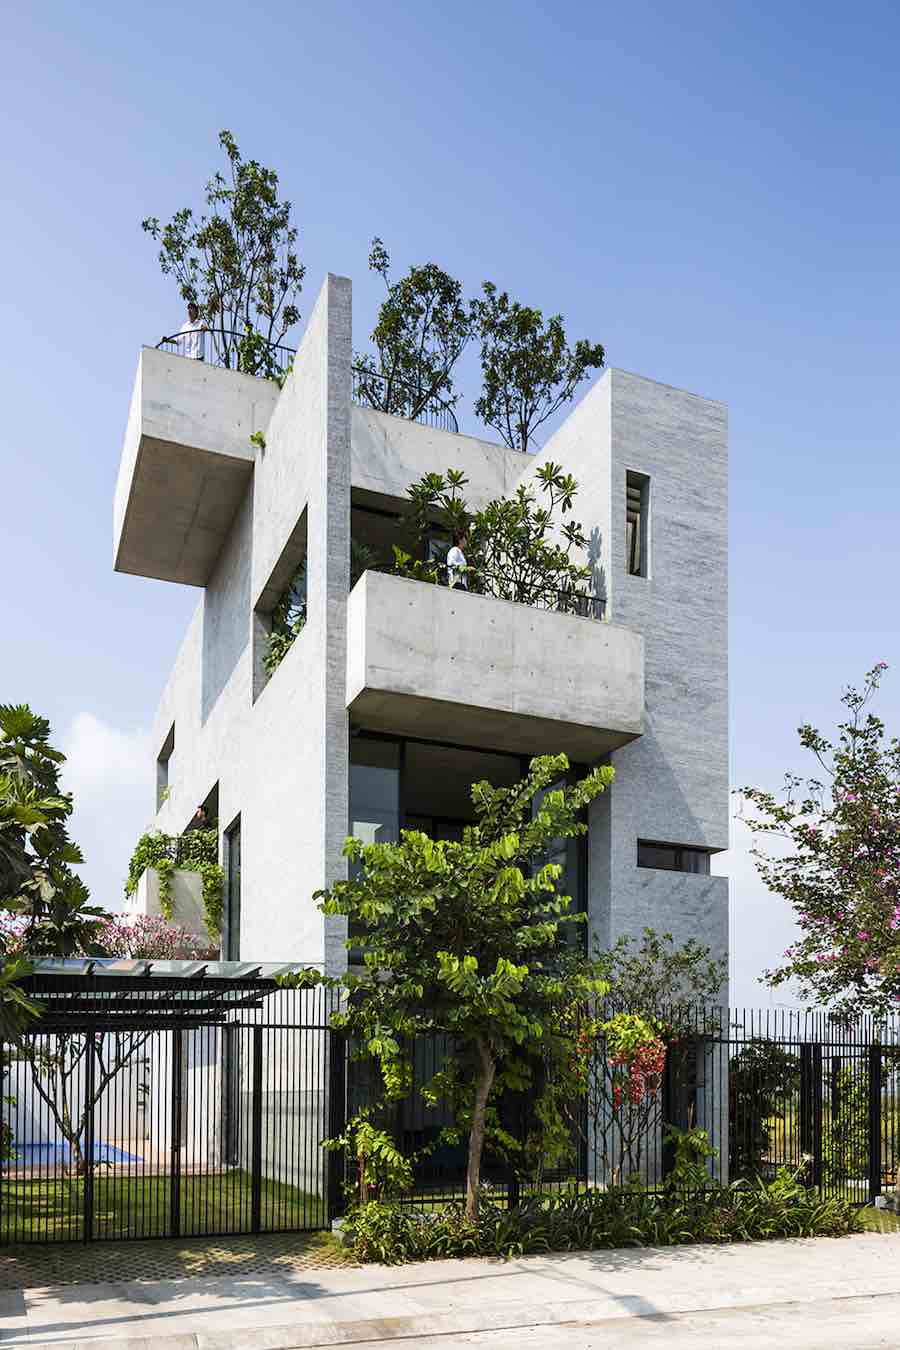 Binh House by Vo Trong Nghia Architects - Photo by Hiroyuki Oki, Quang Dam; courtesy of Vo Throng Nghia.